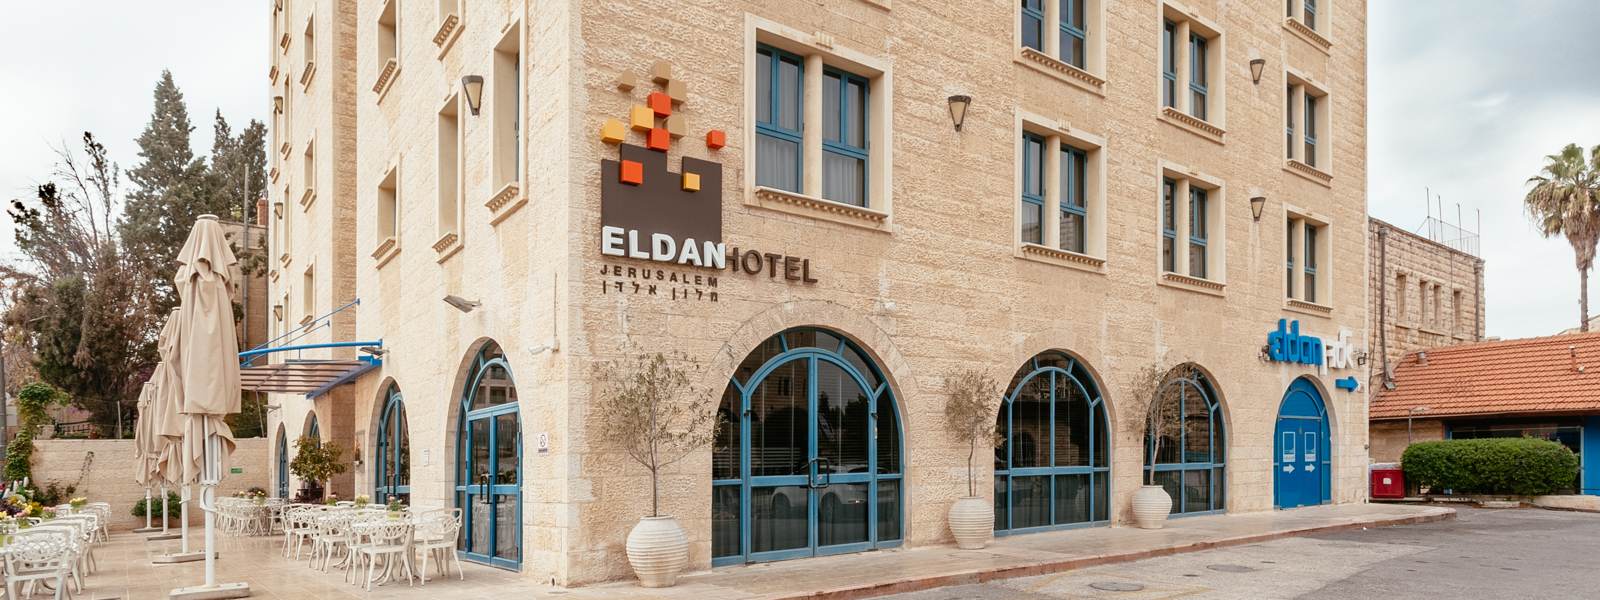 Eldan Hotel - boutique hotel in jerusalem